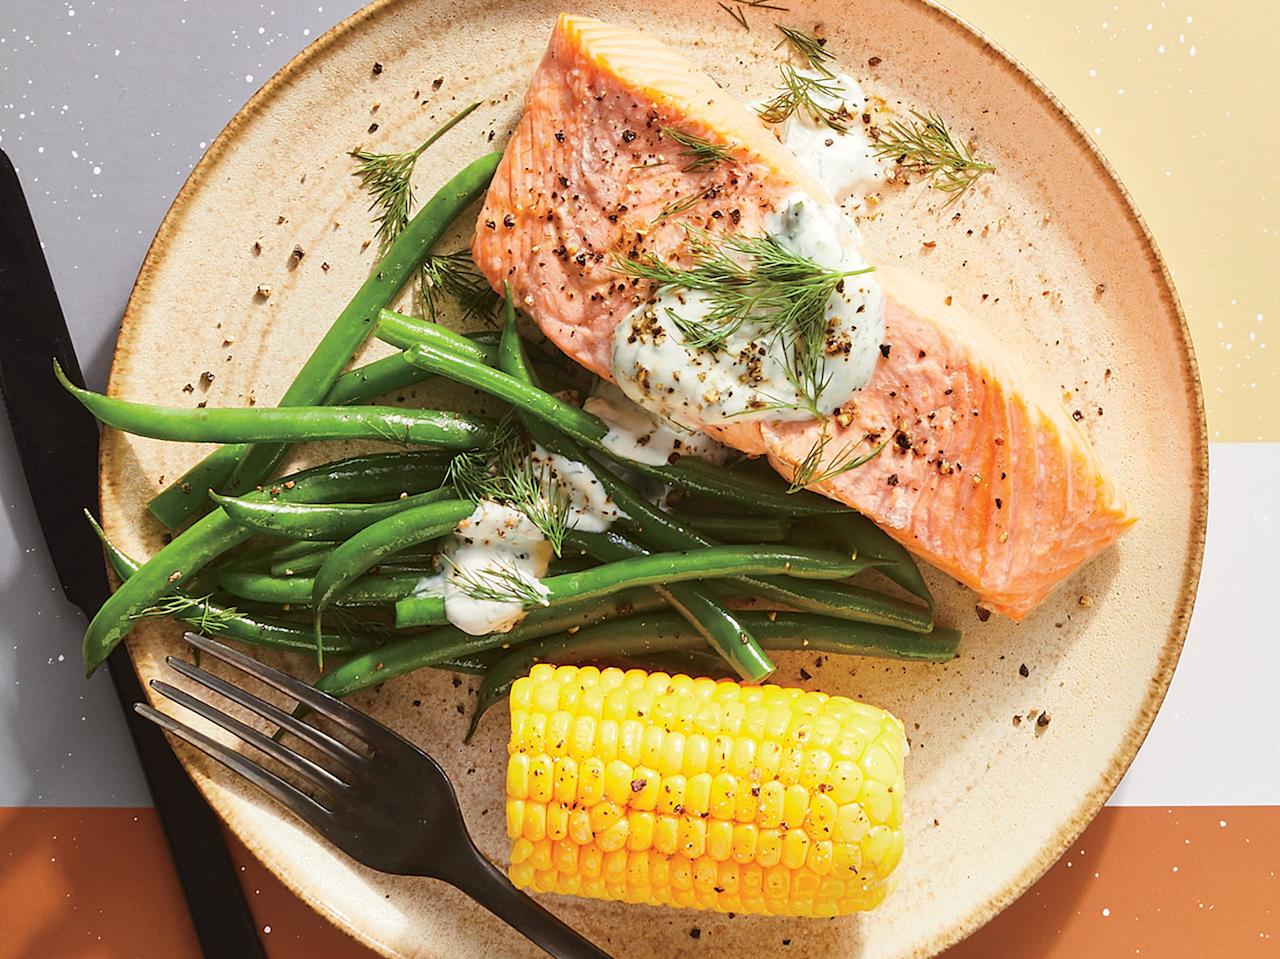 """<p>Steaming is a gentle cooking method that preserves the natural flavors of all the components of this 15-minute meal.</p> <p><a href=""""https://www.myrecipes.com/recipe/simply-steamed-salmon-and-corn-with-dill-yogurt"""">Simply Steamed Salmon and Corn With Dill Yogurt Recipe</a></p>"""